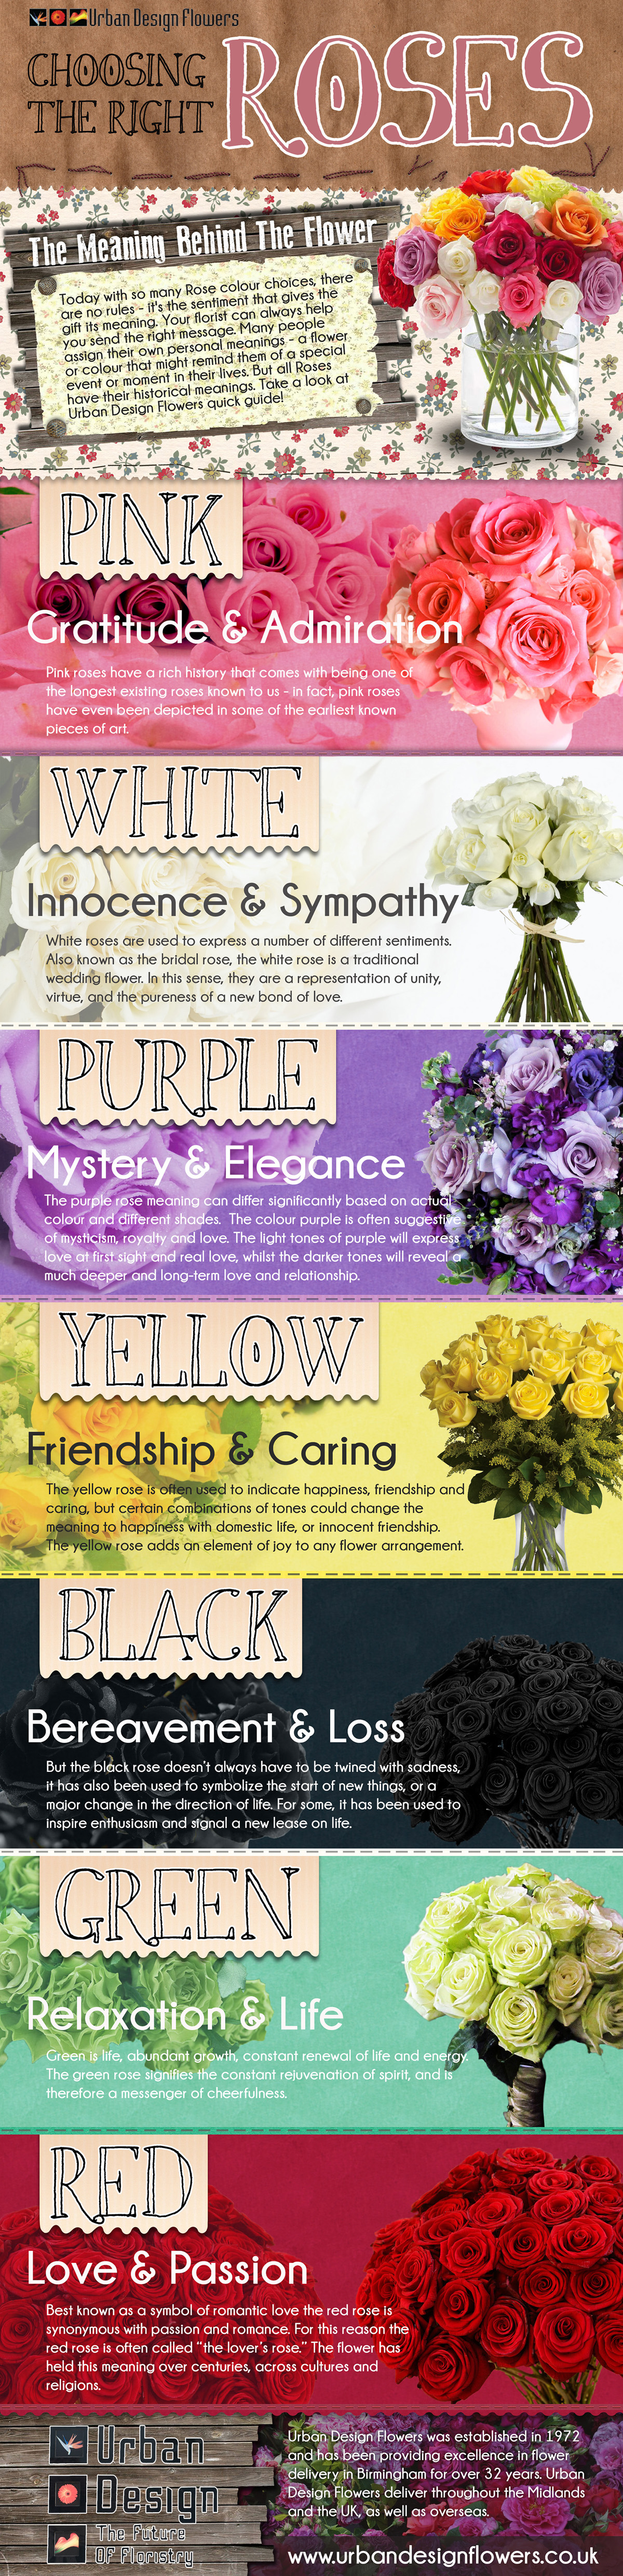 How To Choose The Right Roses Color Wedding Infographic Rose Wedding Bouquet Wedding Flowers